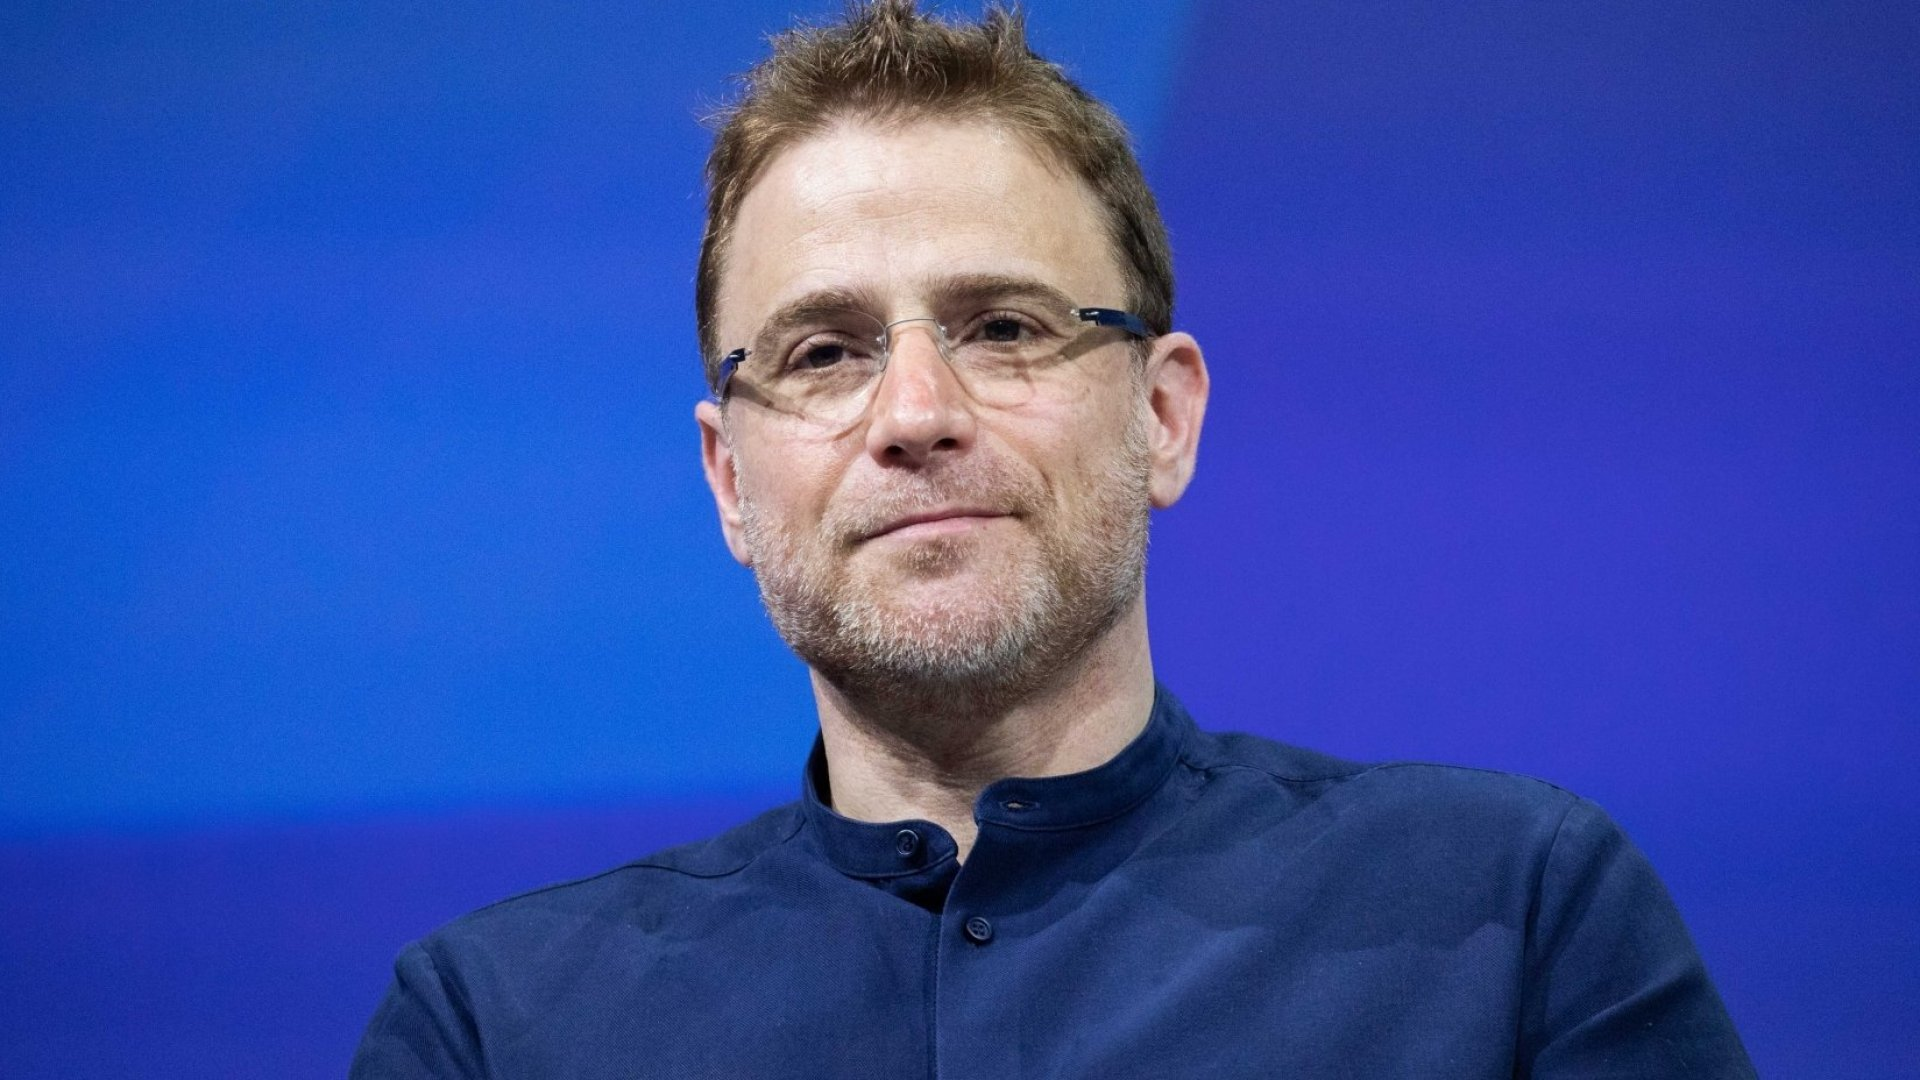 Stewart Butterfield, Co-founder and CEO of Slack, attends the Viva Tech startup and technology gathering at Parc des Expositions Porte de Versailles on May 24, 2018 in Paris, France.